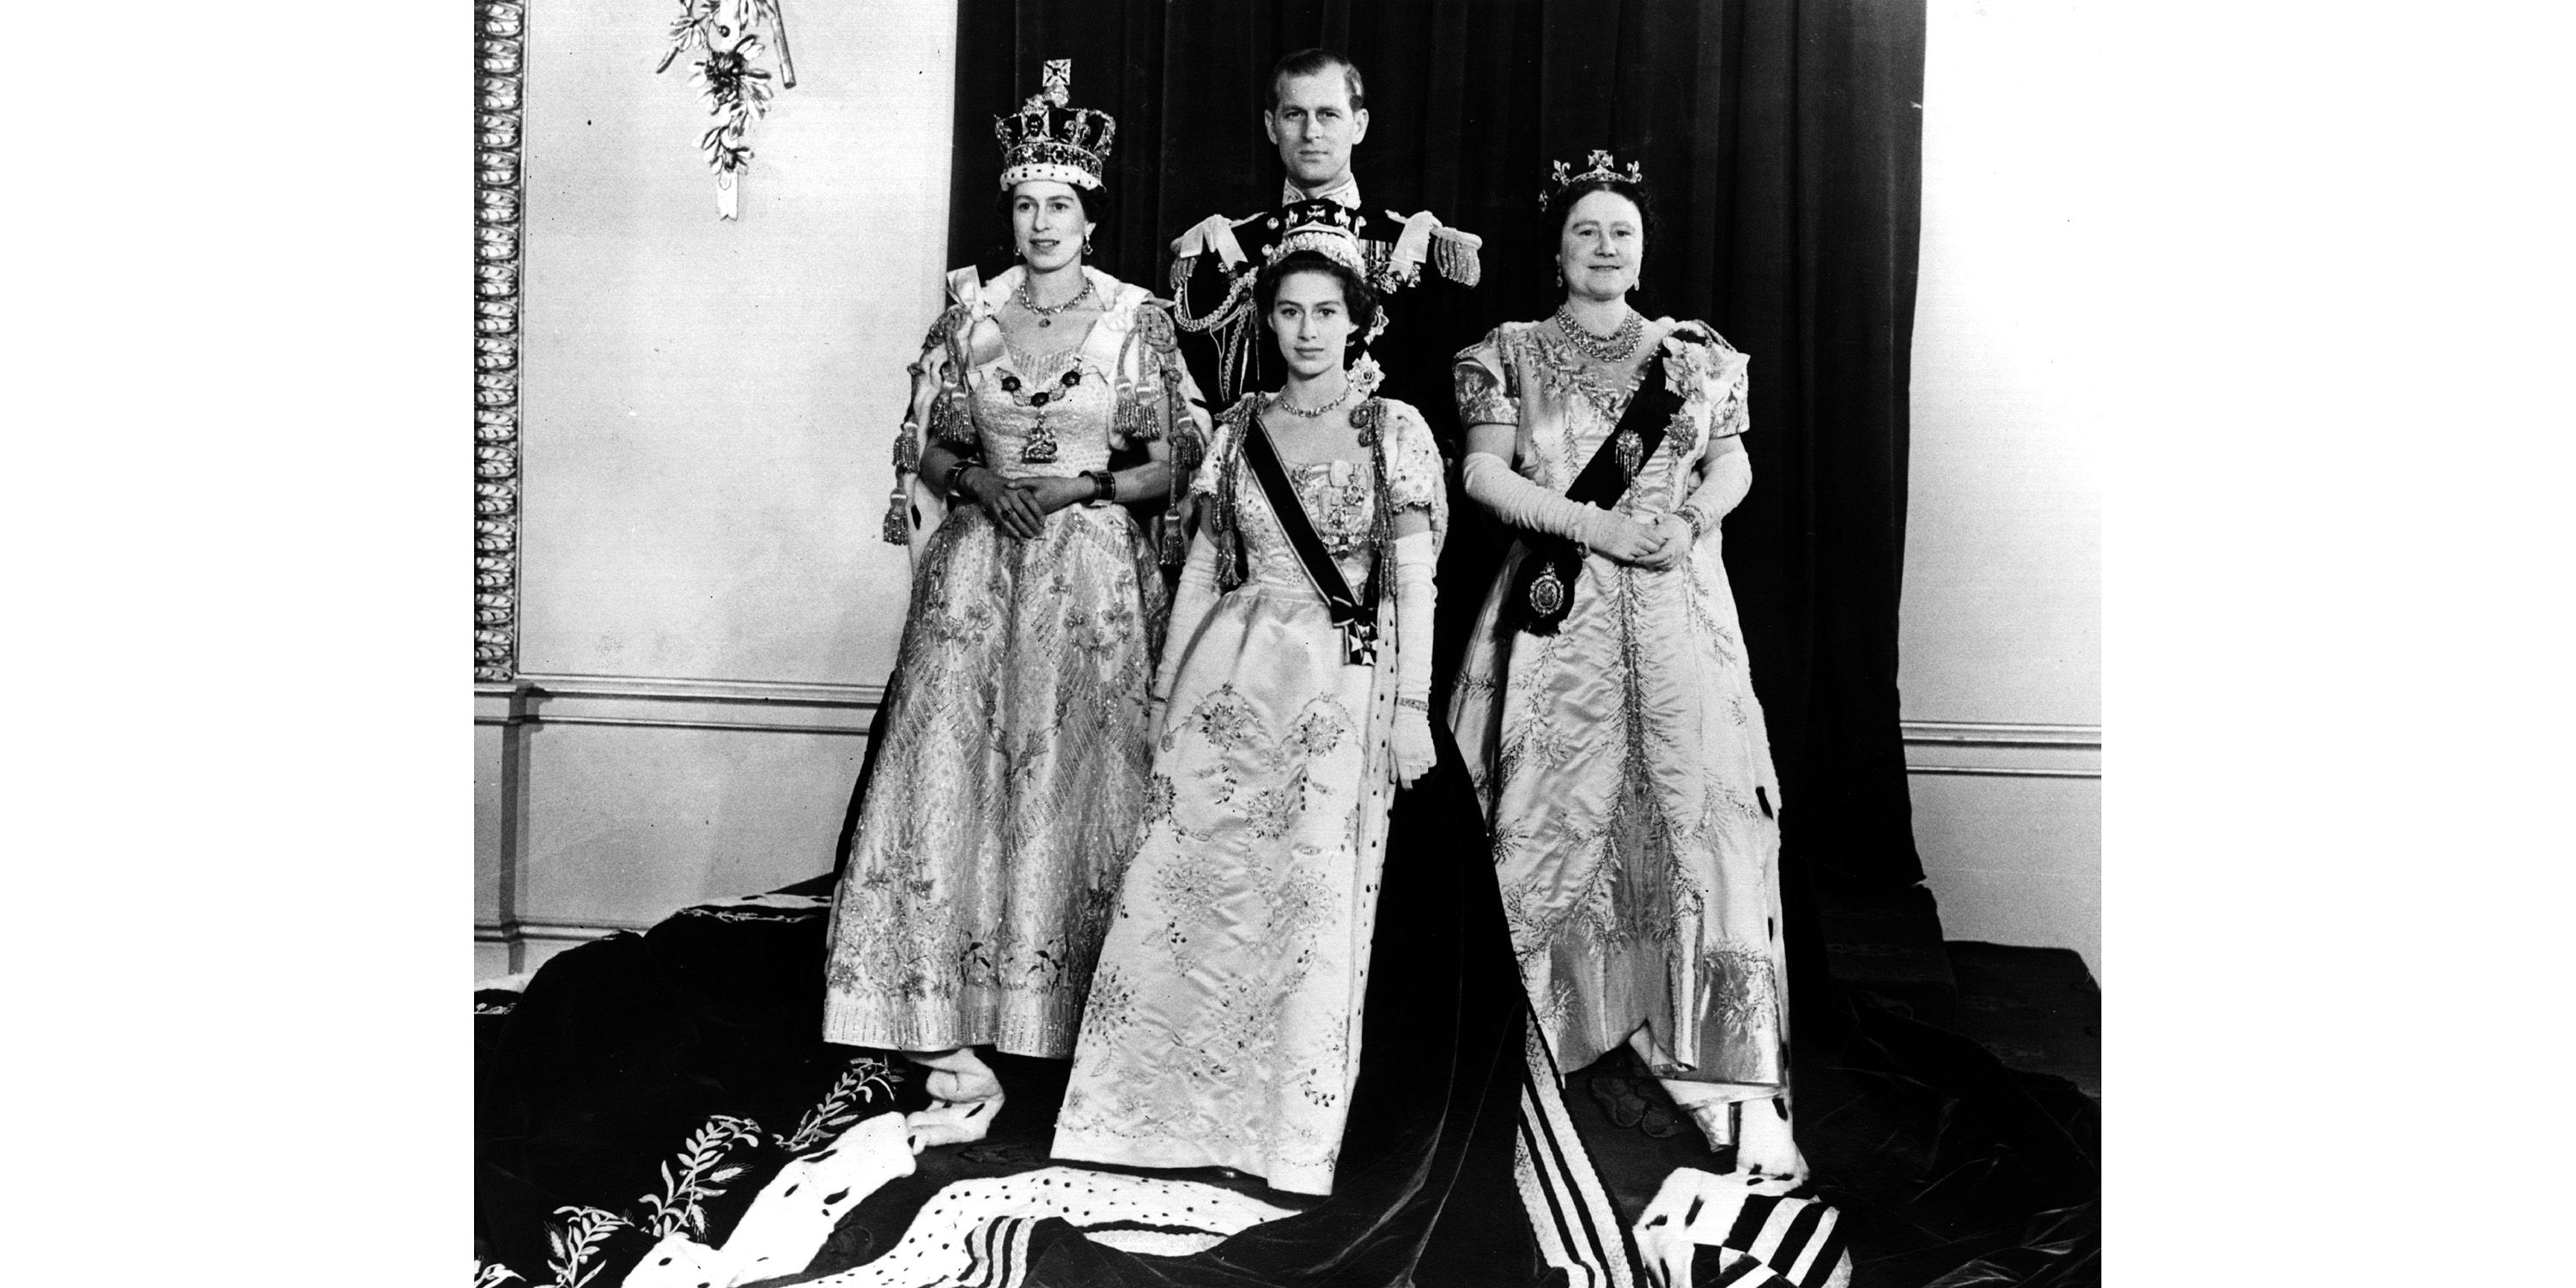 In Photos The British Royal Family Through the Years